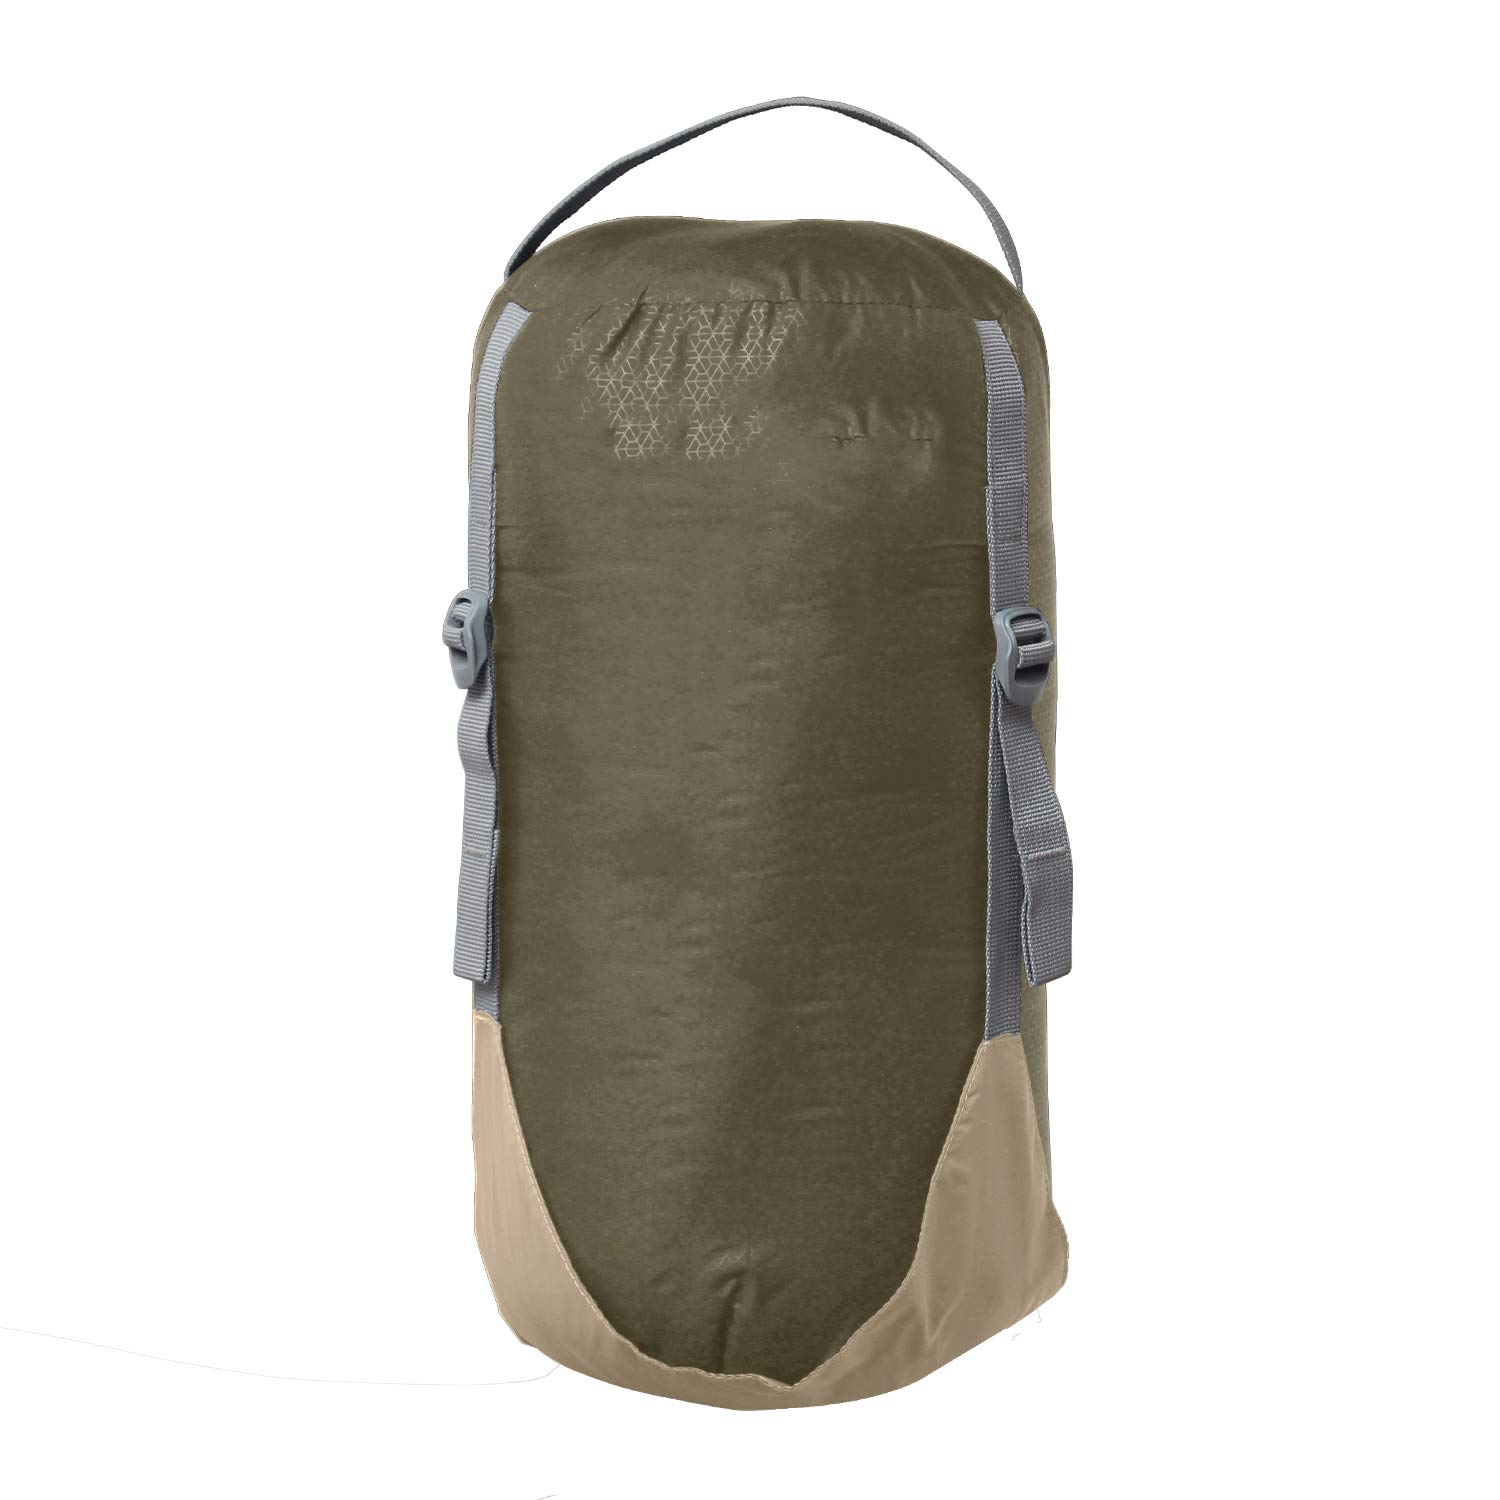 WINNER OUTFITTERS Compression Sacks with 4 Straps, Perfect for Sleeping Bag,Camping,Hiking,Backpacking